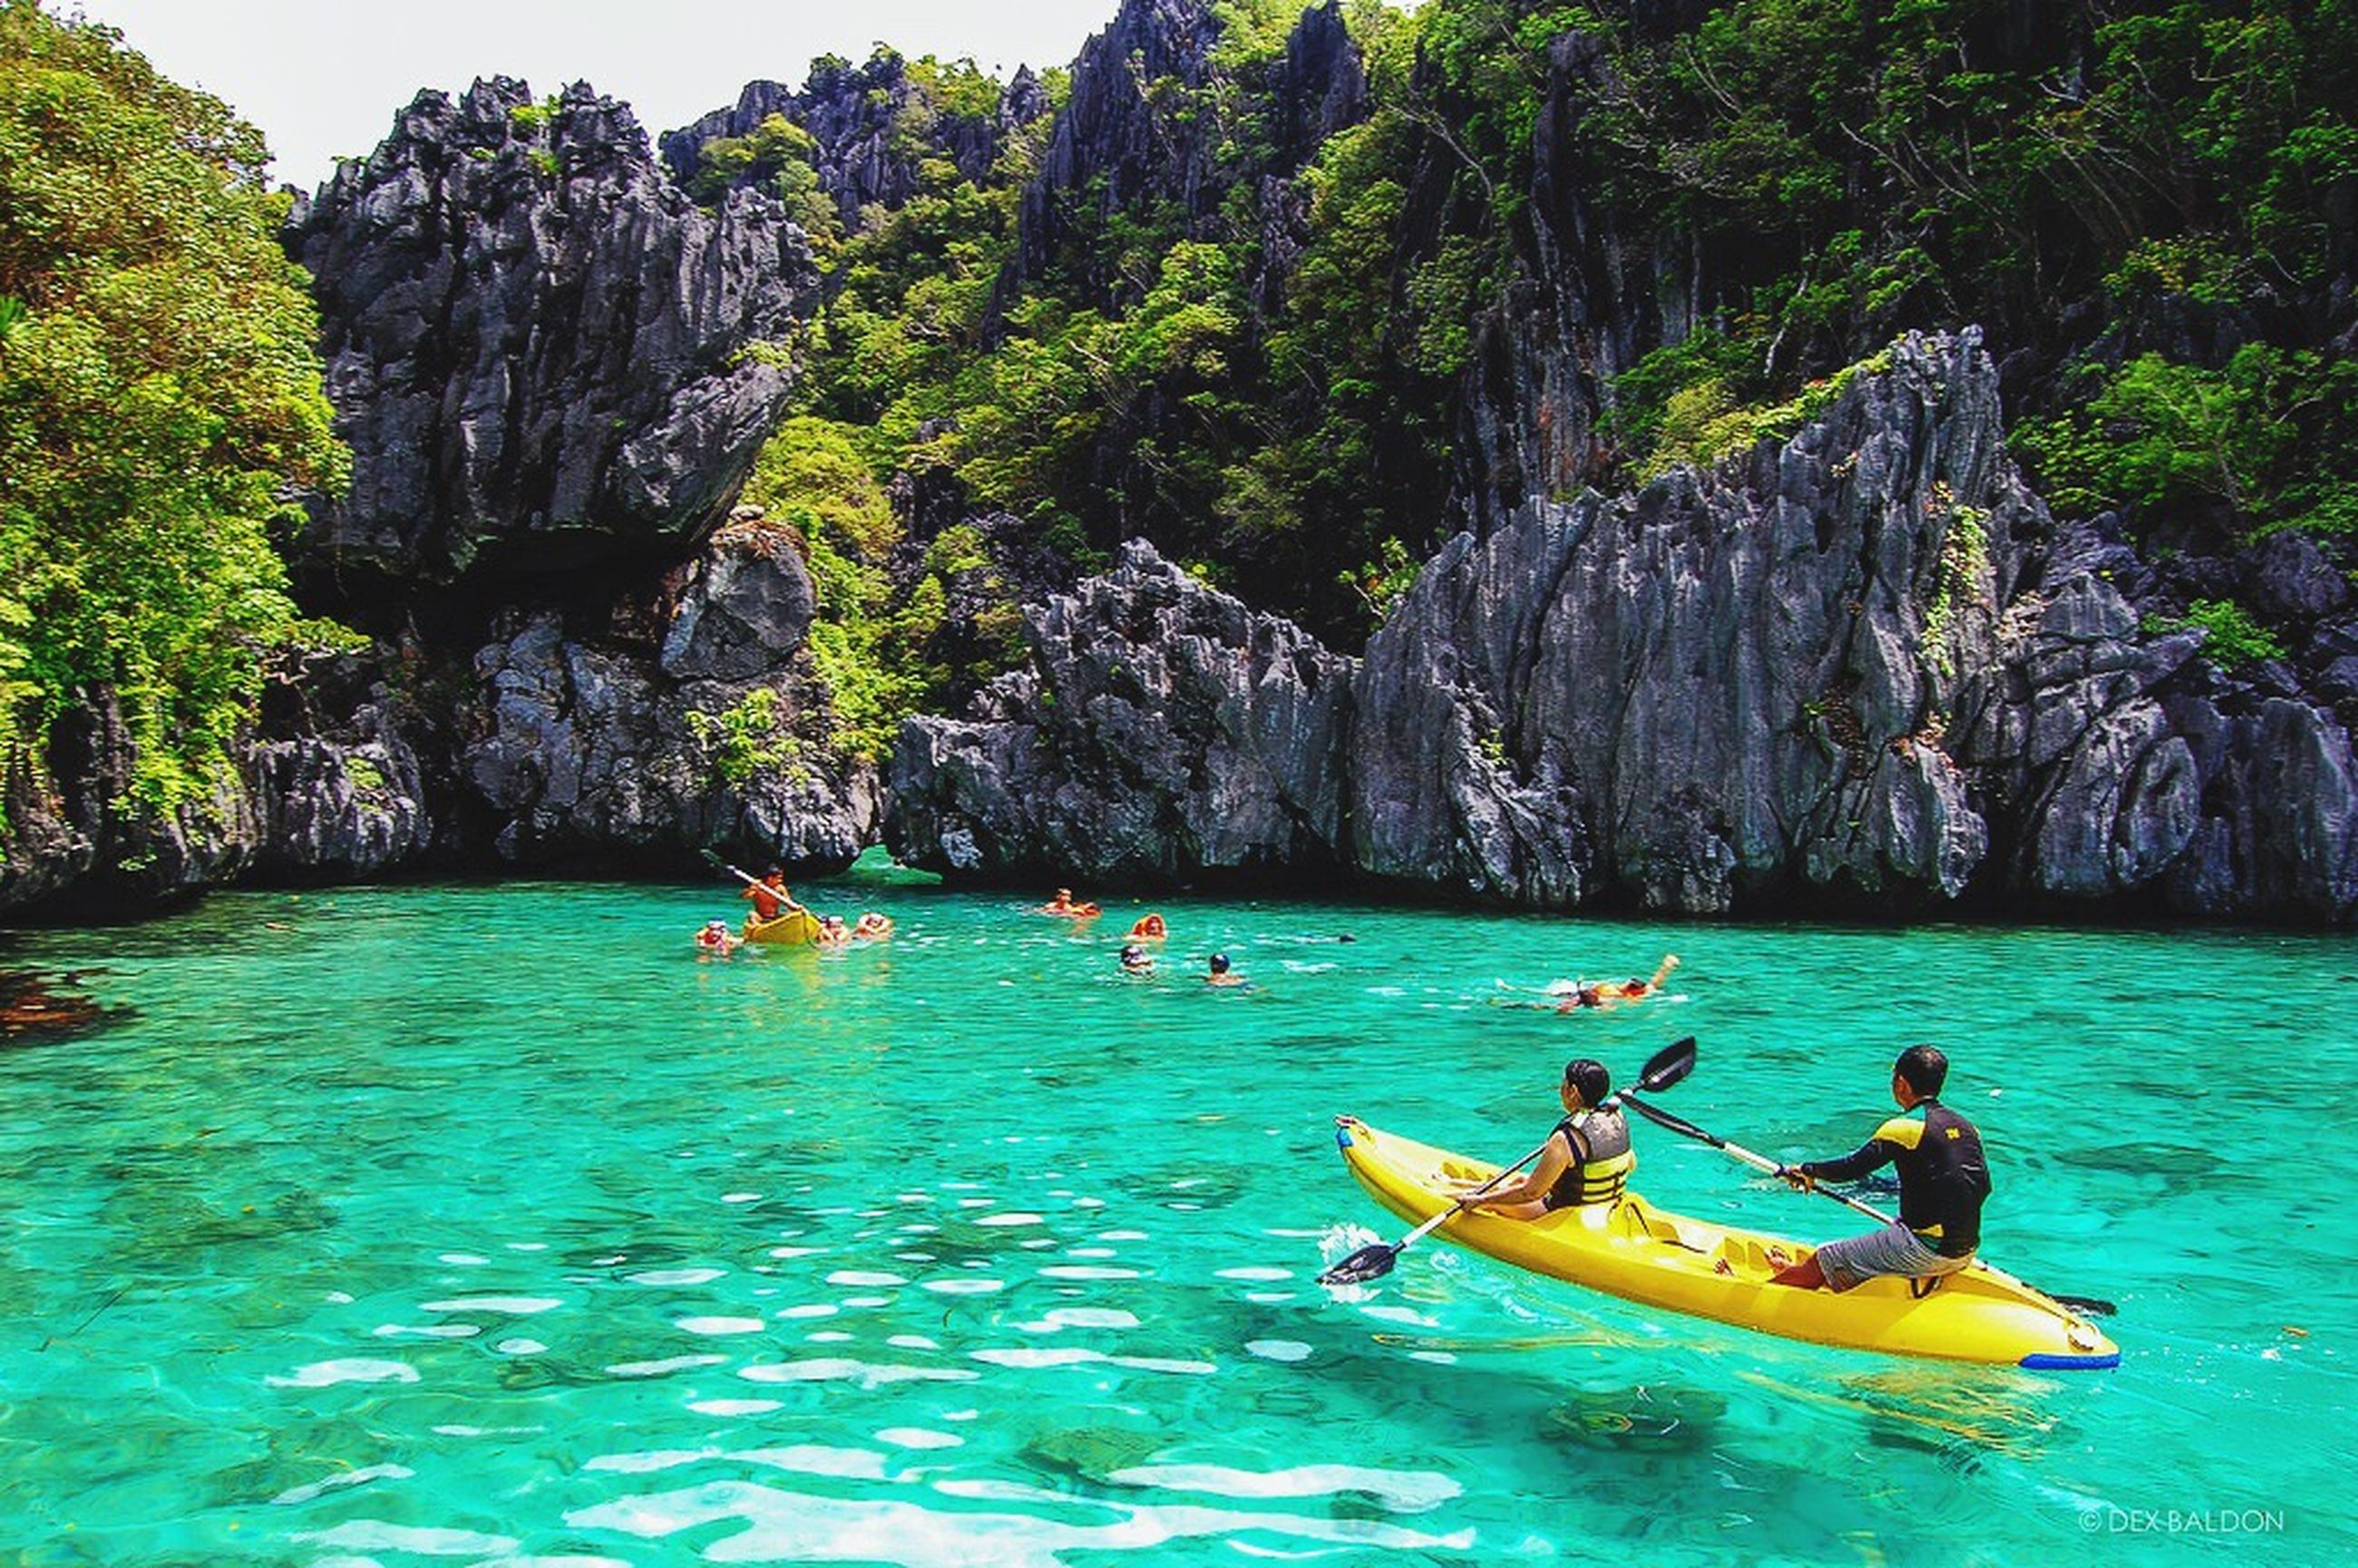 water, nautical vessel, transportation, boat, tranquility, tranquil scene, men, mode of transport, leisure activity, scenics, vacations, tree, sea, nature, waterfront, cliff, person, blue, non-urban scene, rock formation, tourist, beauty in nature, kayak, boating, tourism, fun, adventure